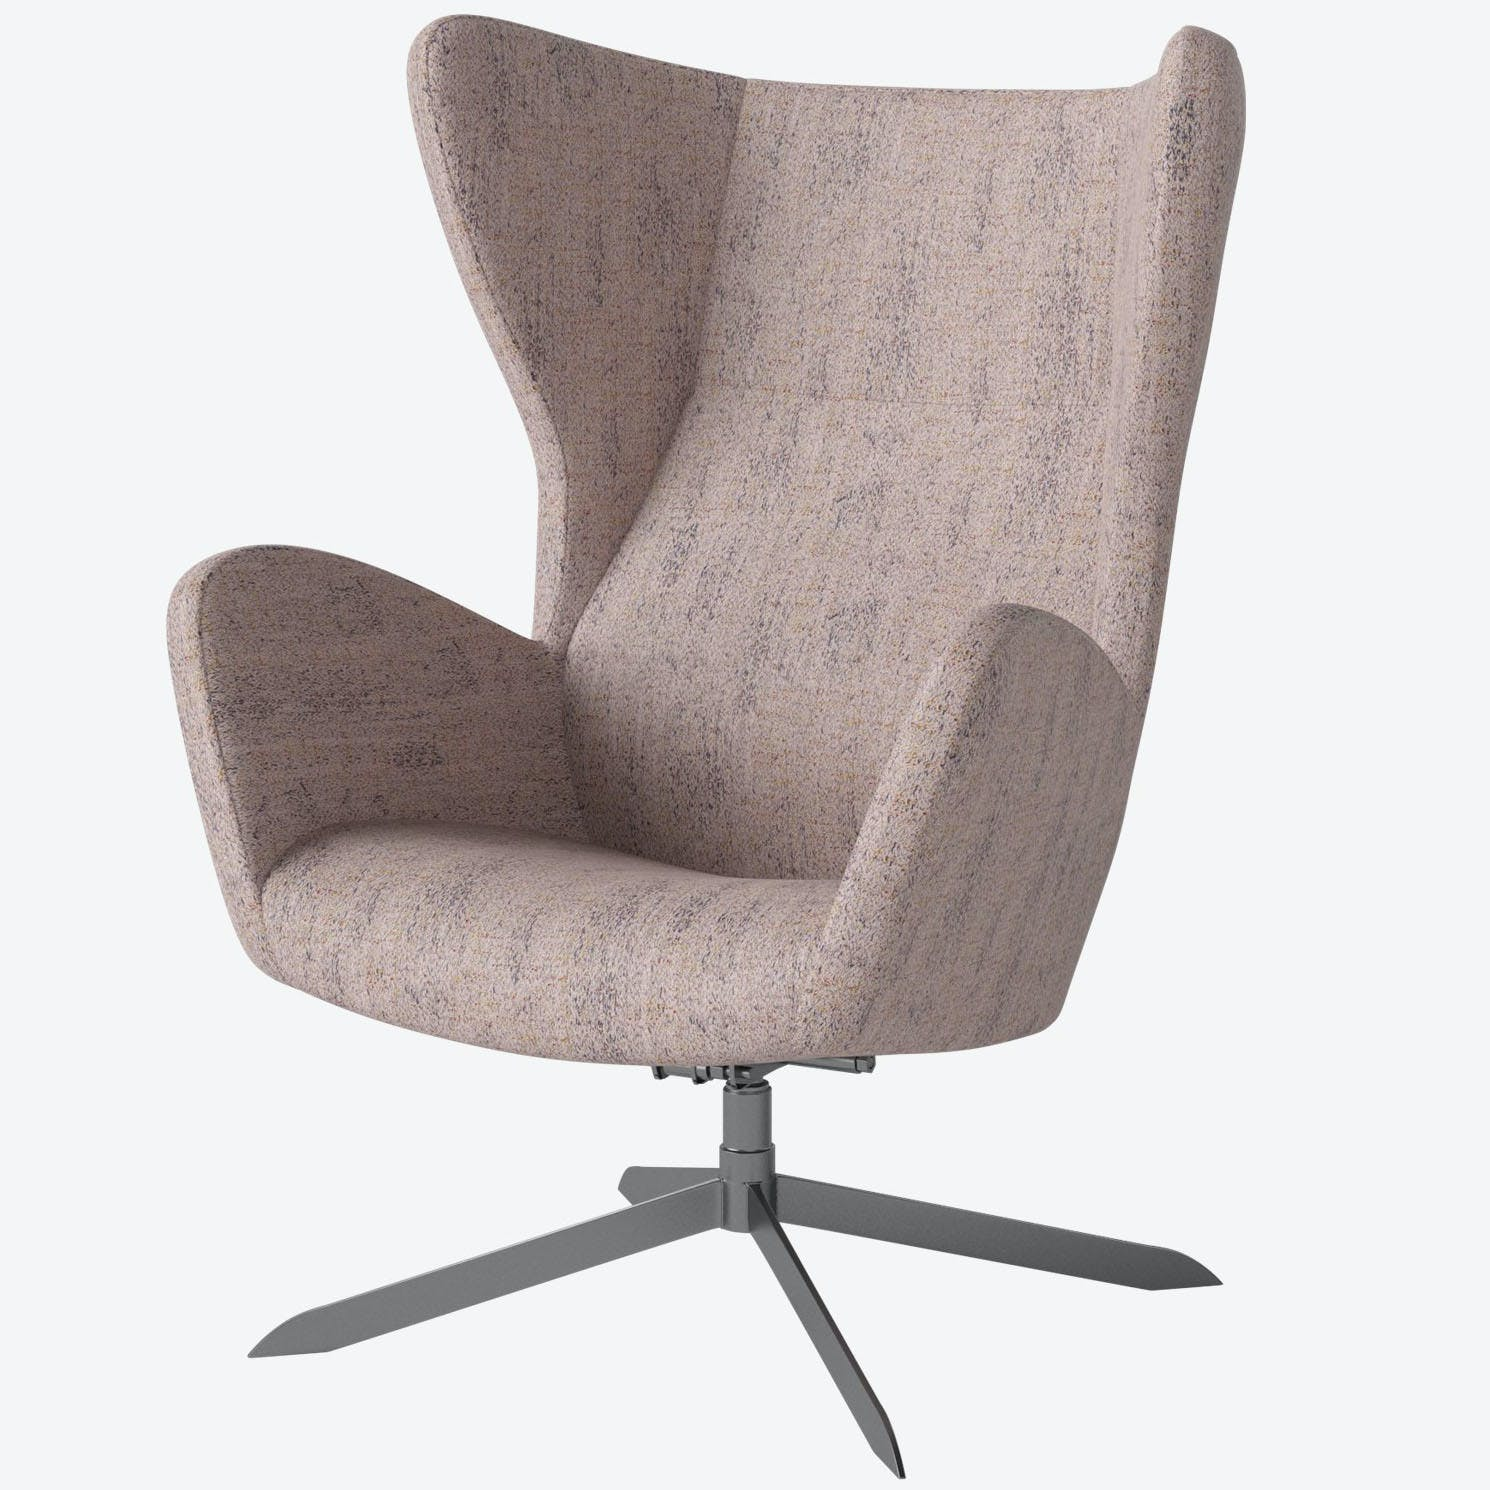 Bolia Sion Chair Thumbnail 2019 Haute Living